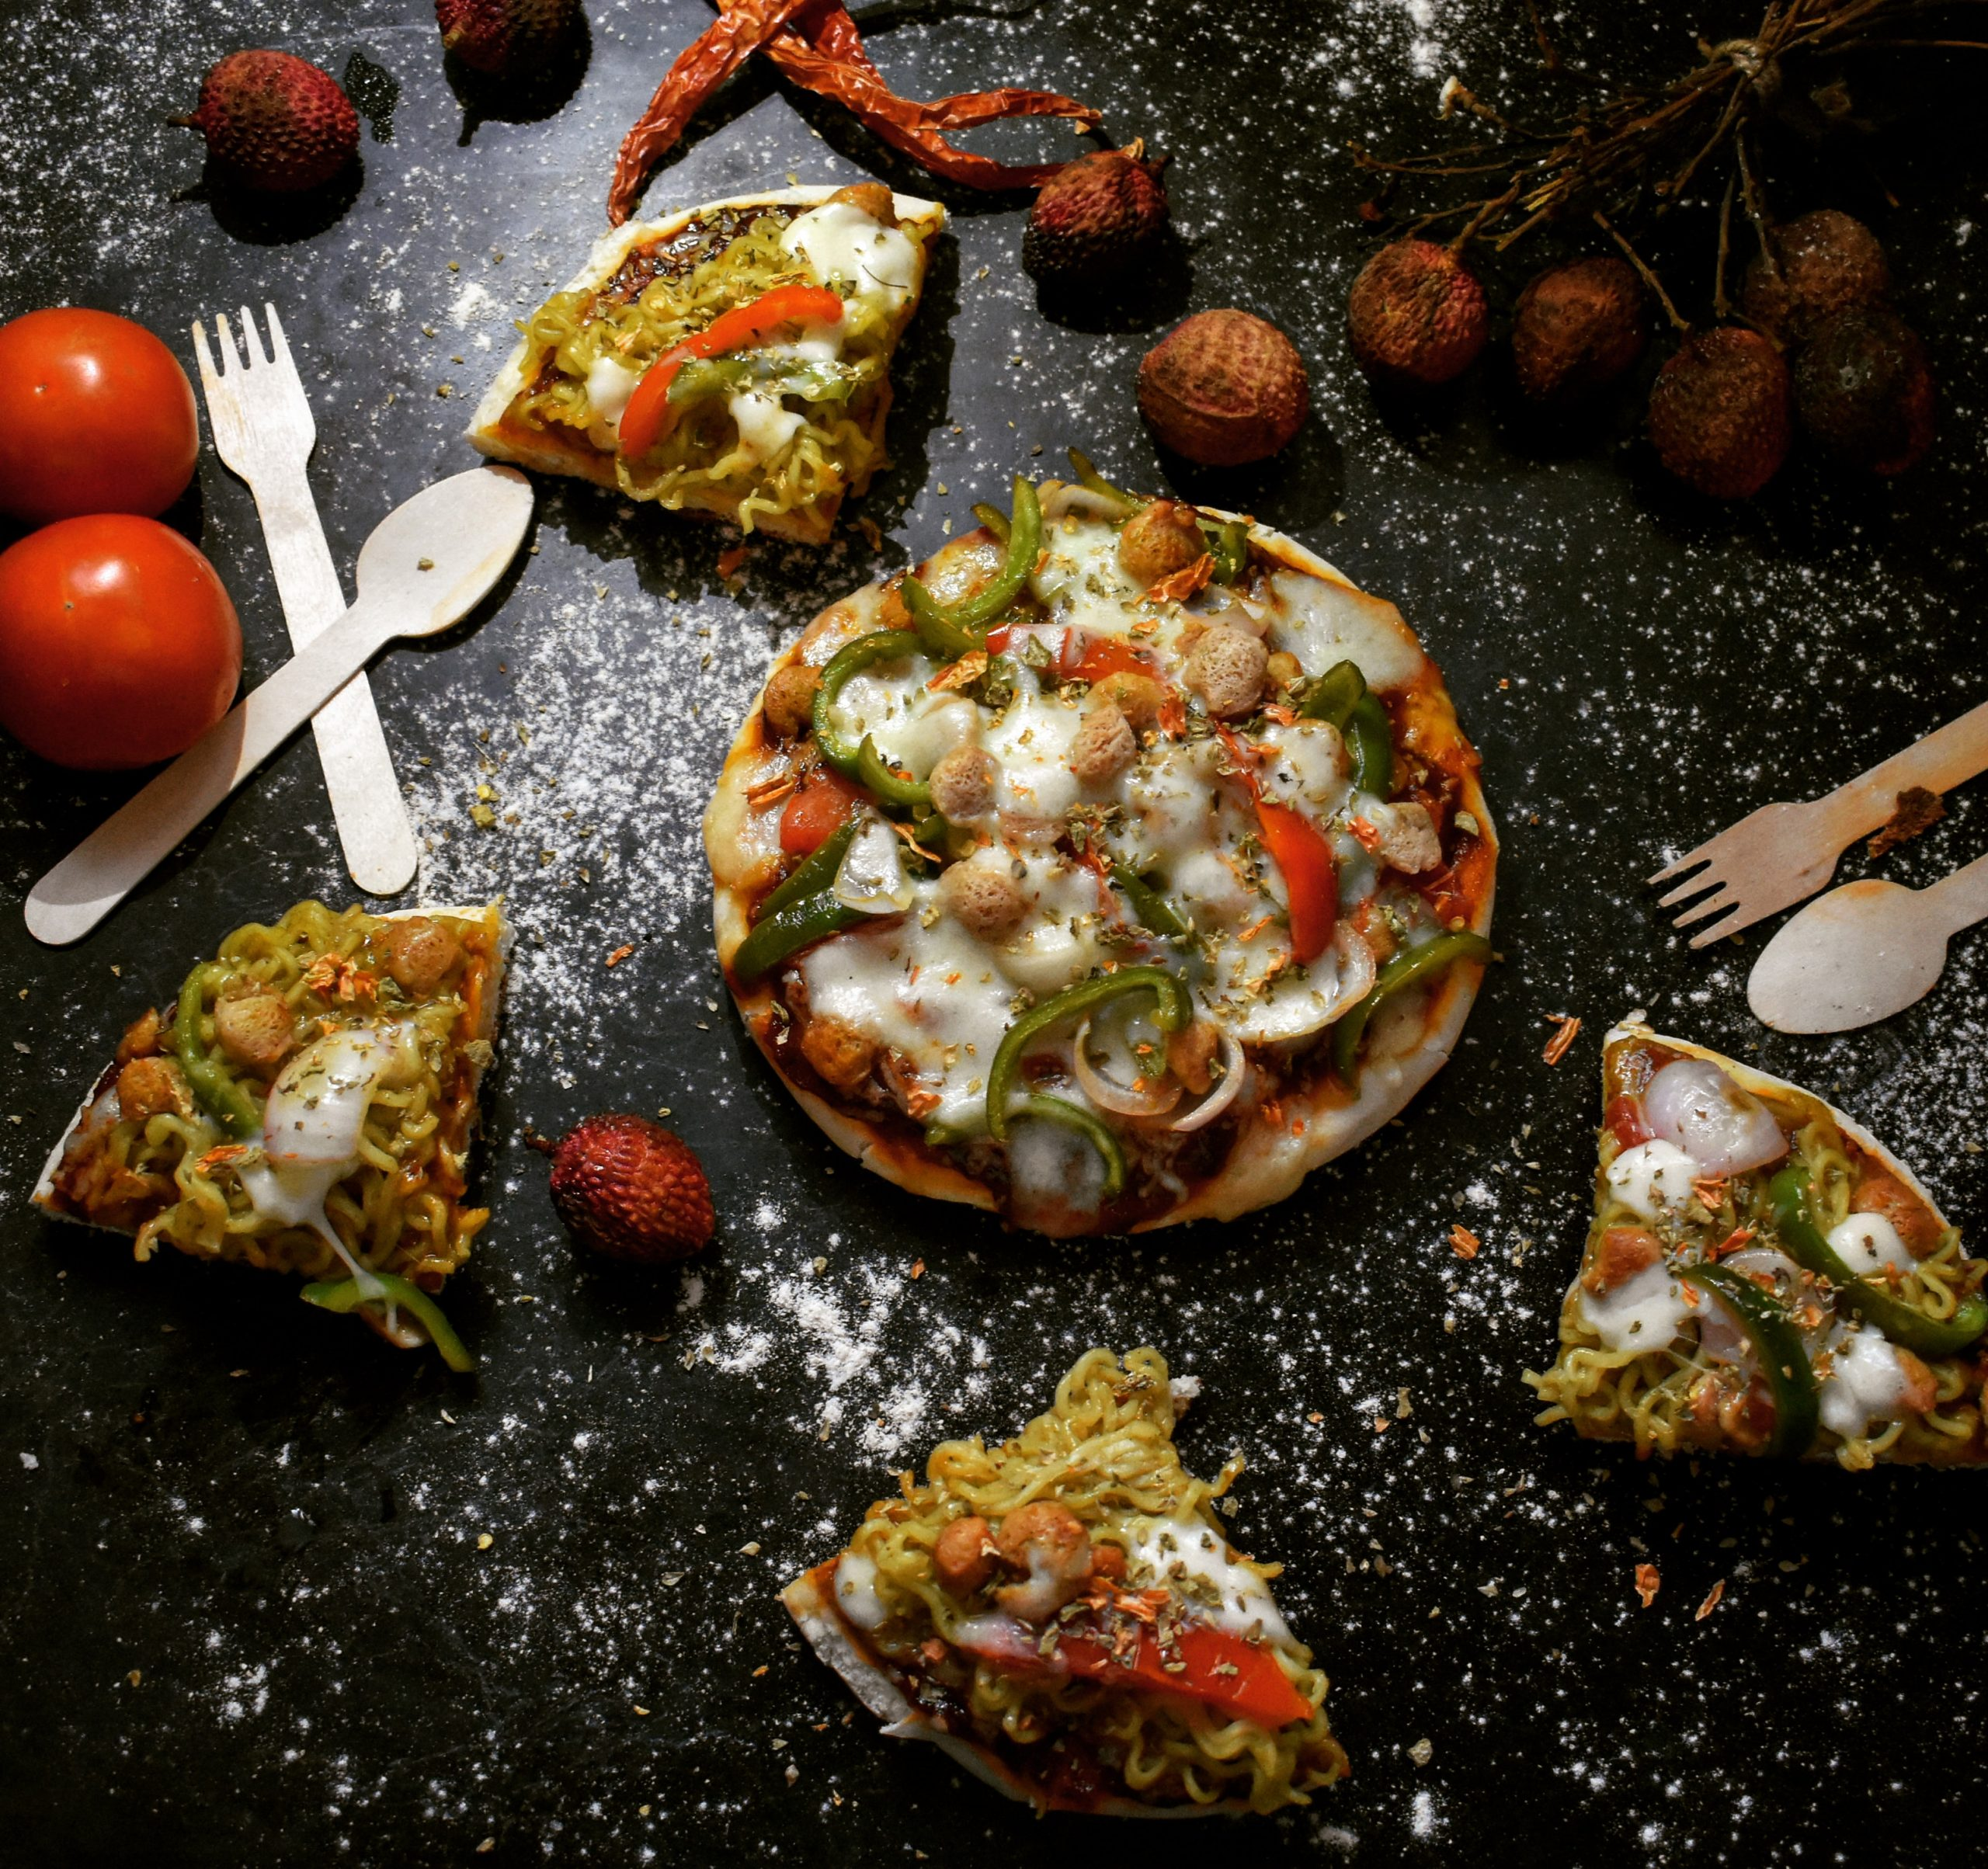 Veg Cheesy Pizza with Litchi and Tomato